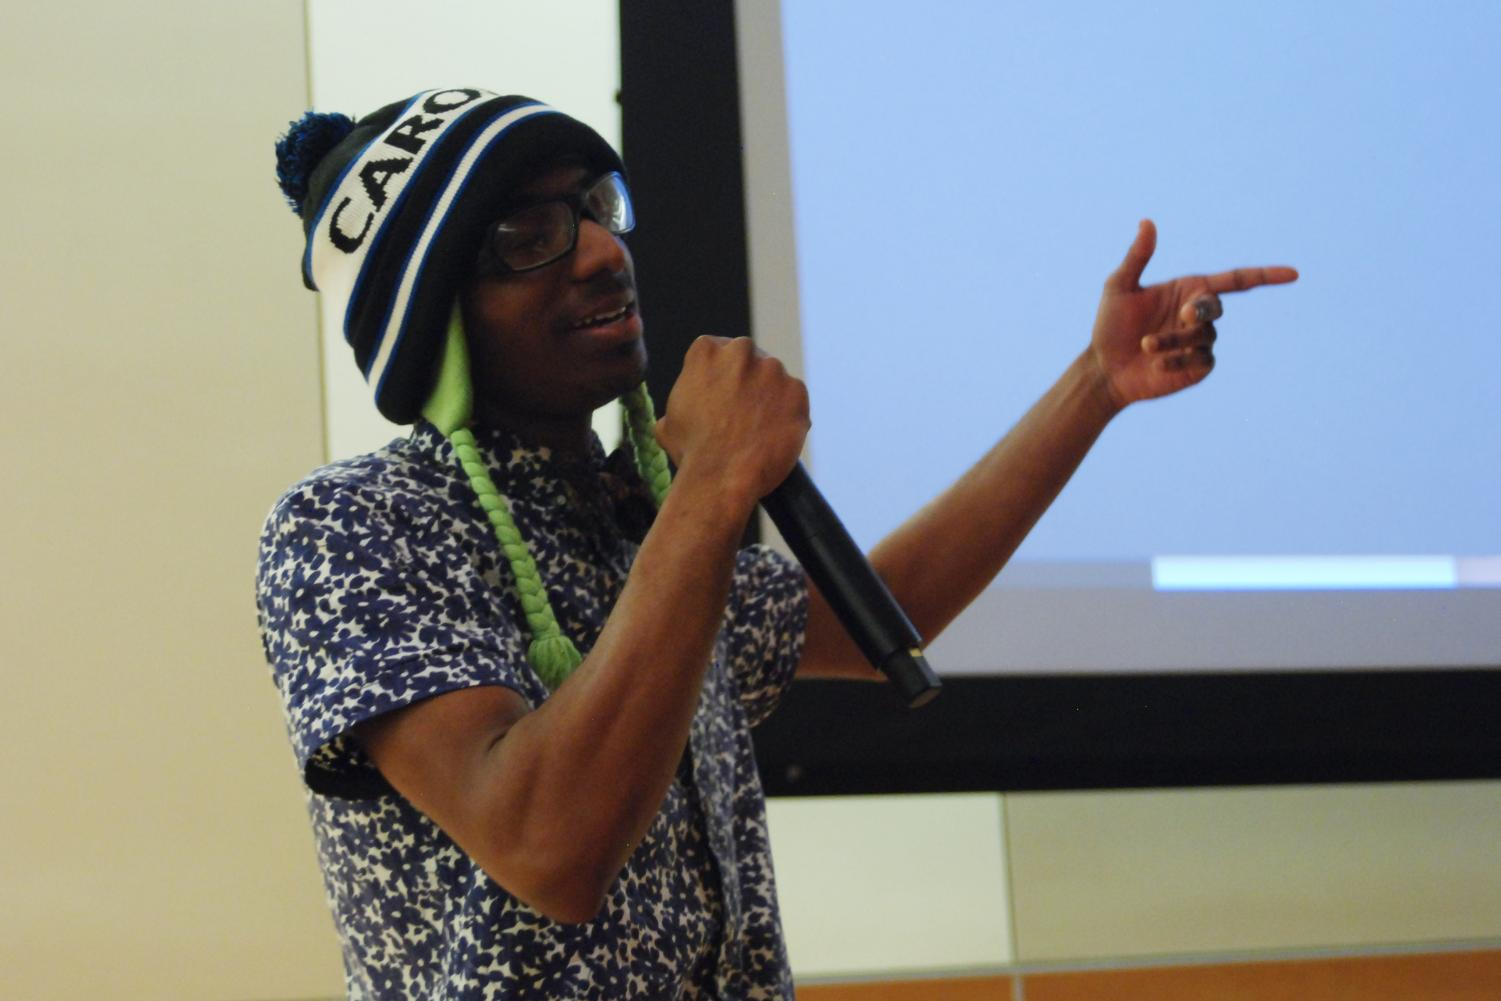 Hip hop artist Jamie of James Hope raps an emotional piece on authenticity, identity and mental health in hip-hop culture Thursday evening in the CUB Senior Ballroom.